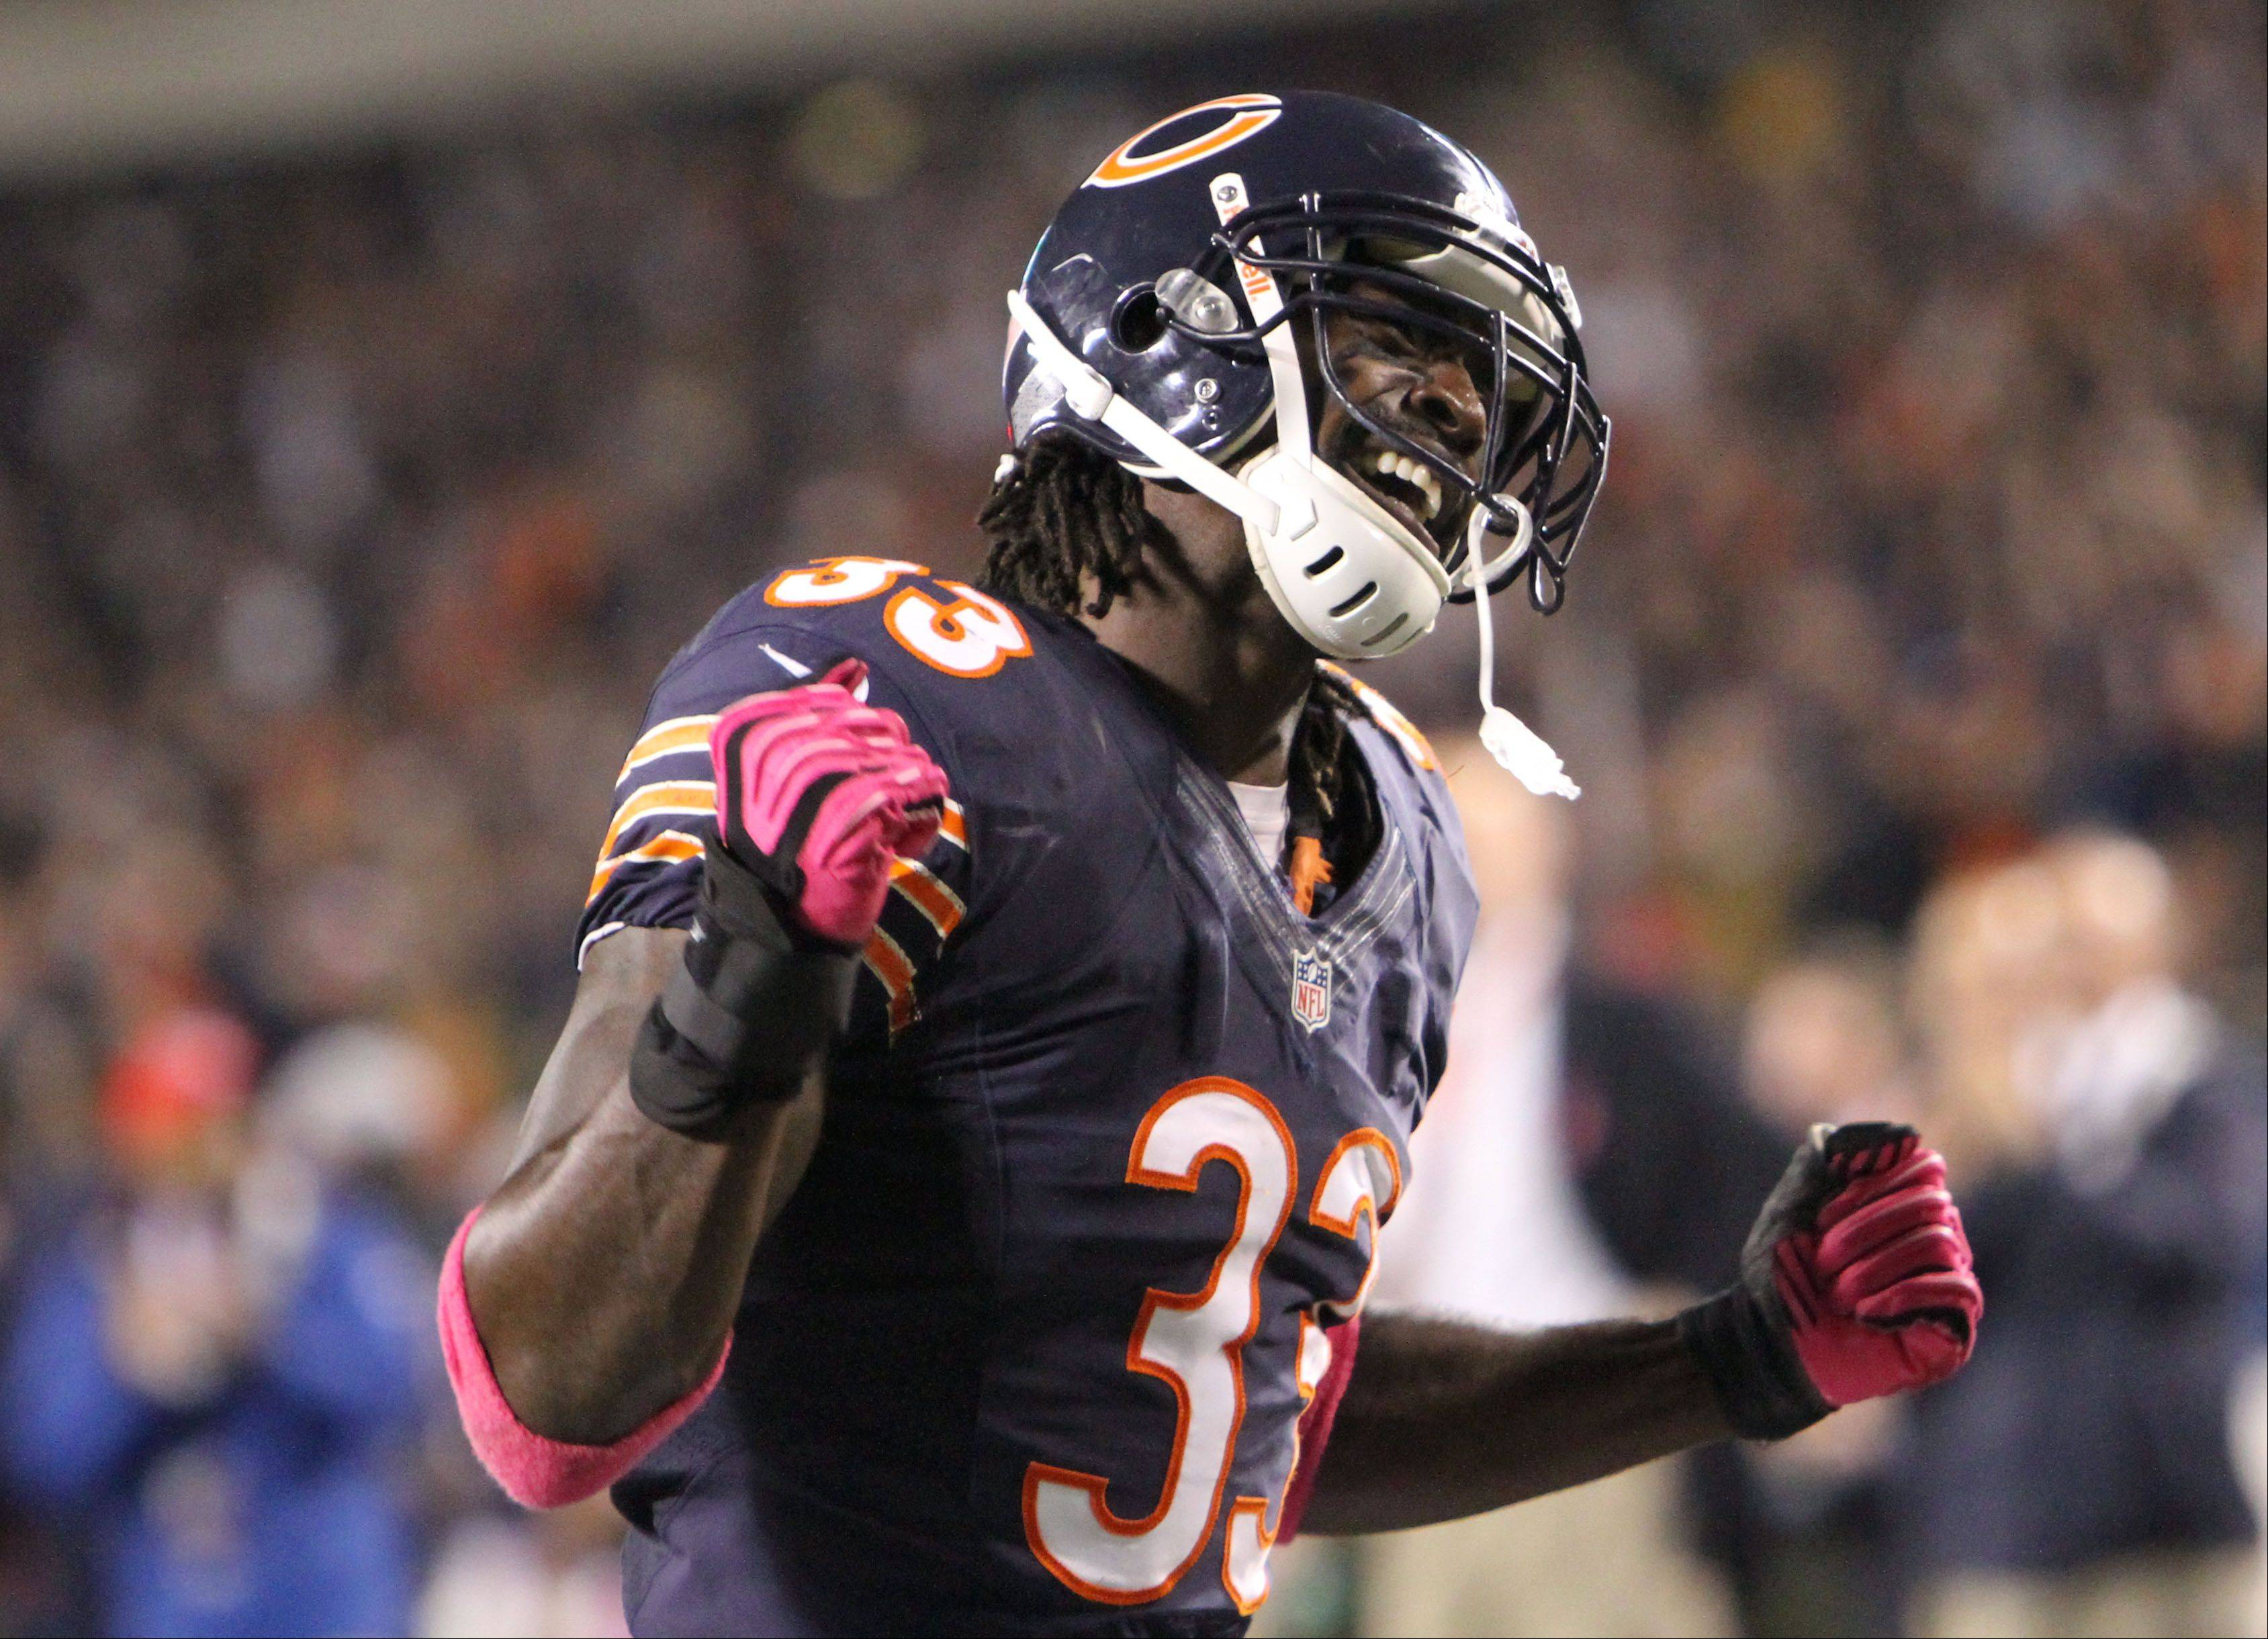 Chicago Bears cornerback Charles Tillman celebrates after Chicago Bears middle linebacker Brian Urlacher recovered a fumble in the third quarter.